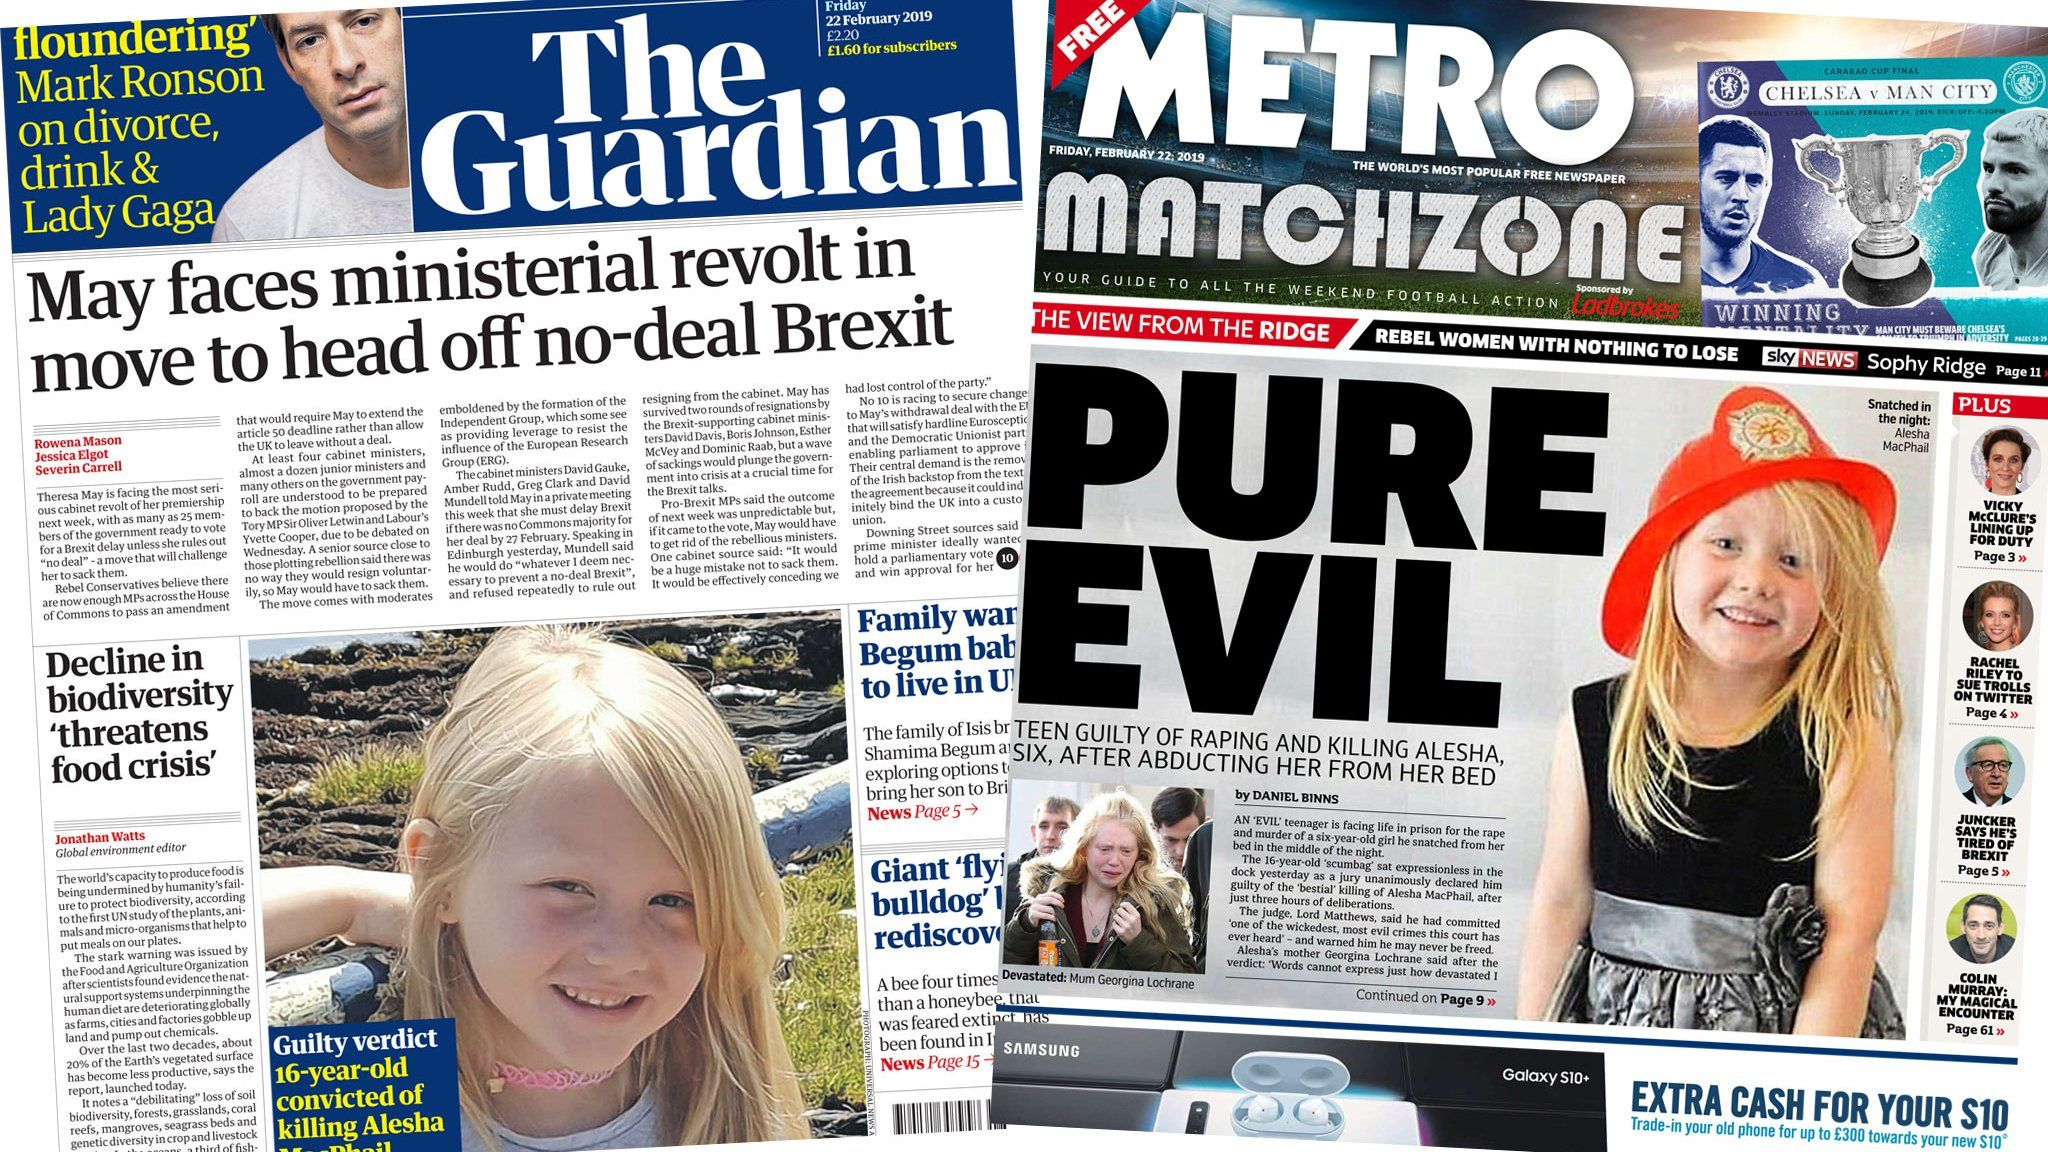 Guardian and the Metro front pages